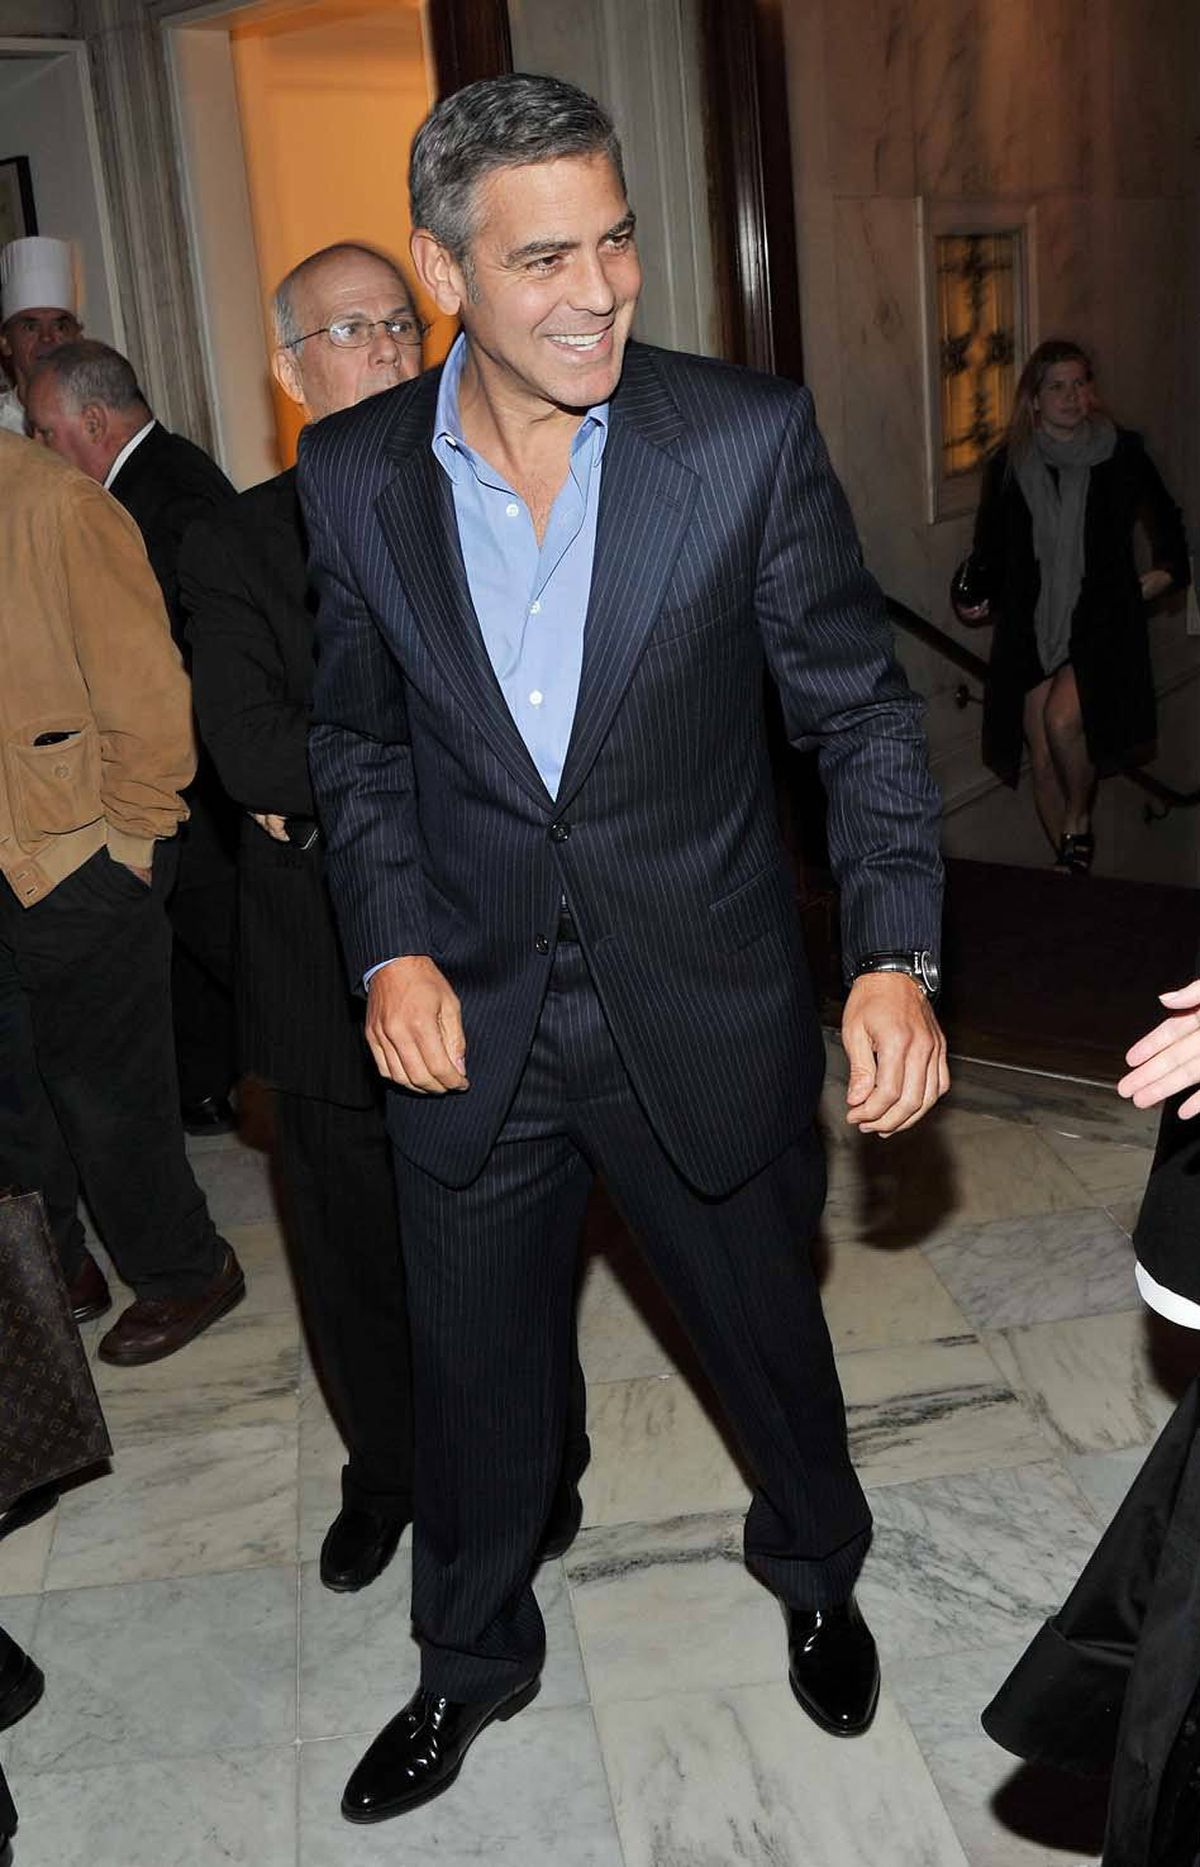 """Left-leaning actor/director George Clooney attends the after-party for the premiere of """"The Ides of March"""" in a swank and exclusive club in Manhattan last week. He said last week he would pay more attention to the Occupy Wall Street movement were he not so busy attending events like this. Seriously. That's what he said."""